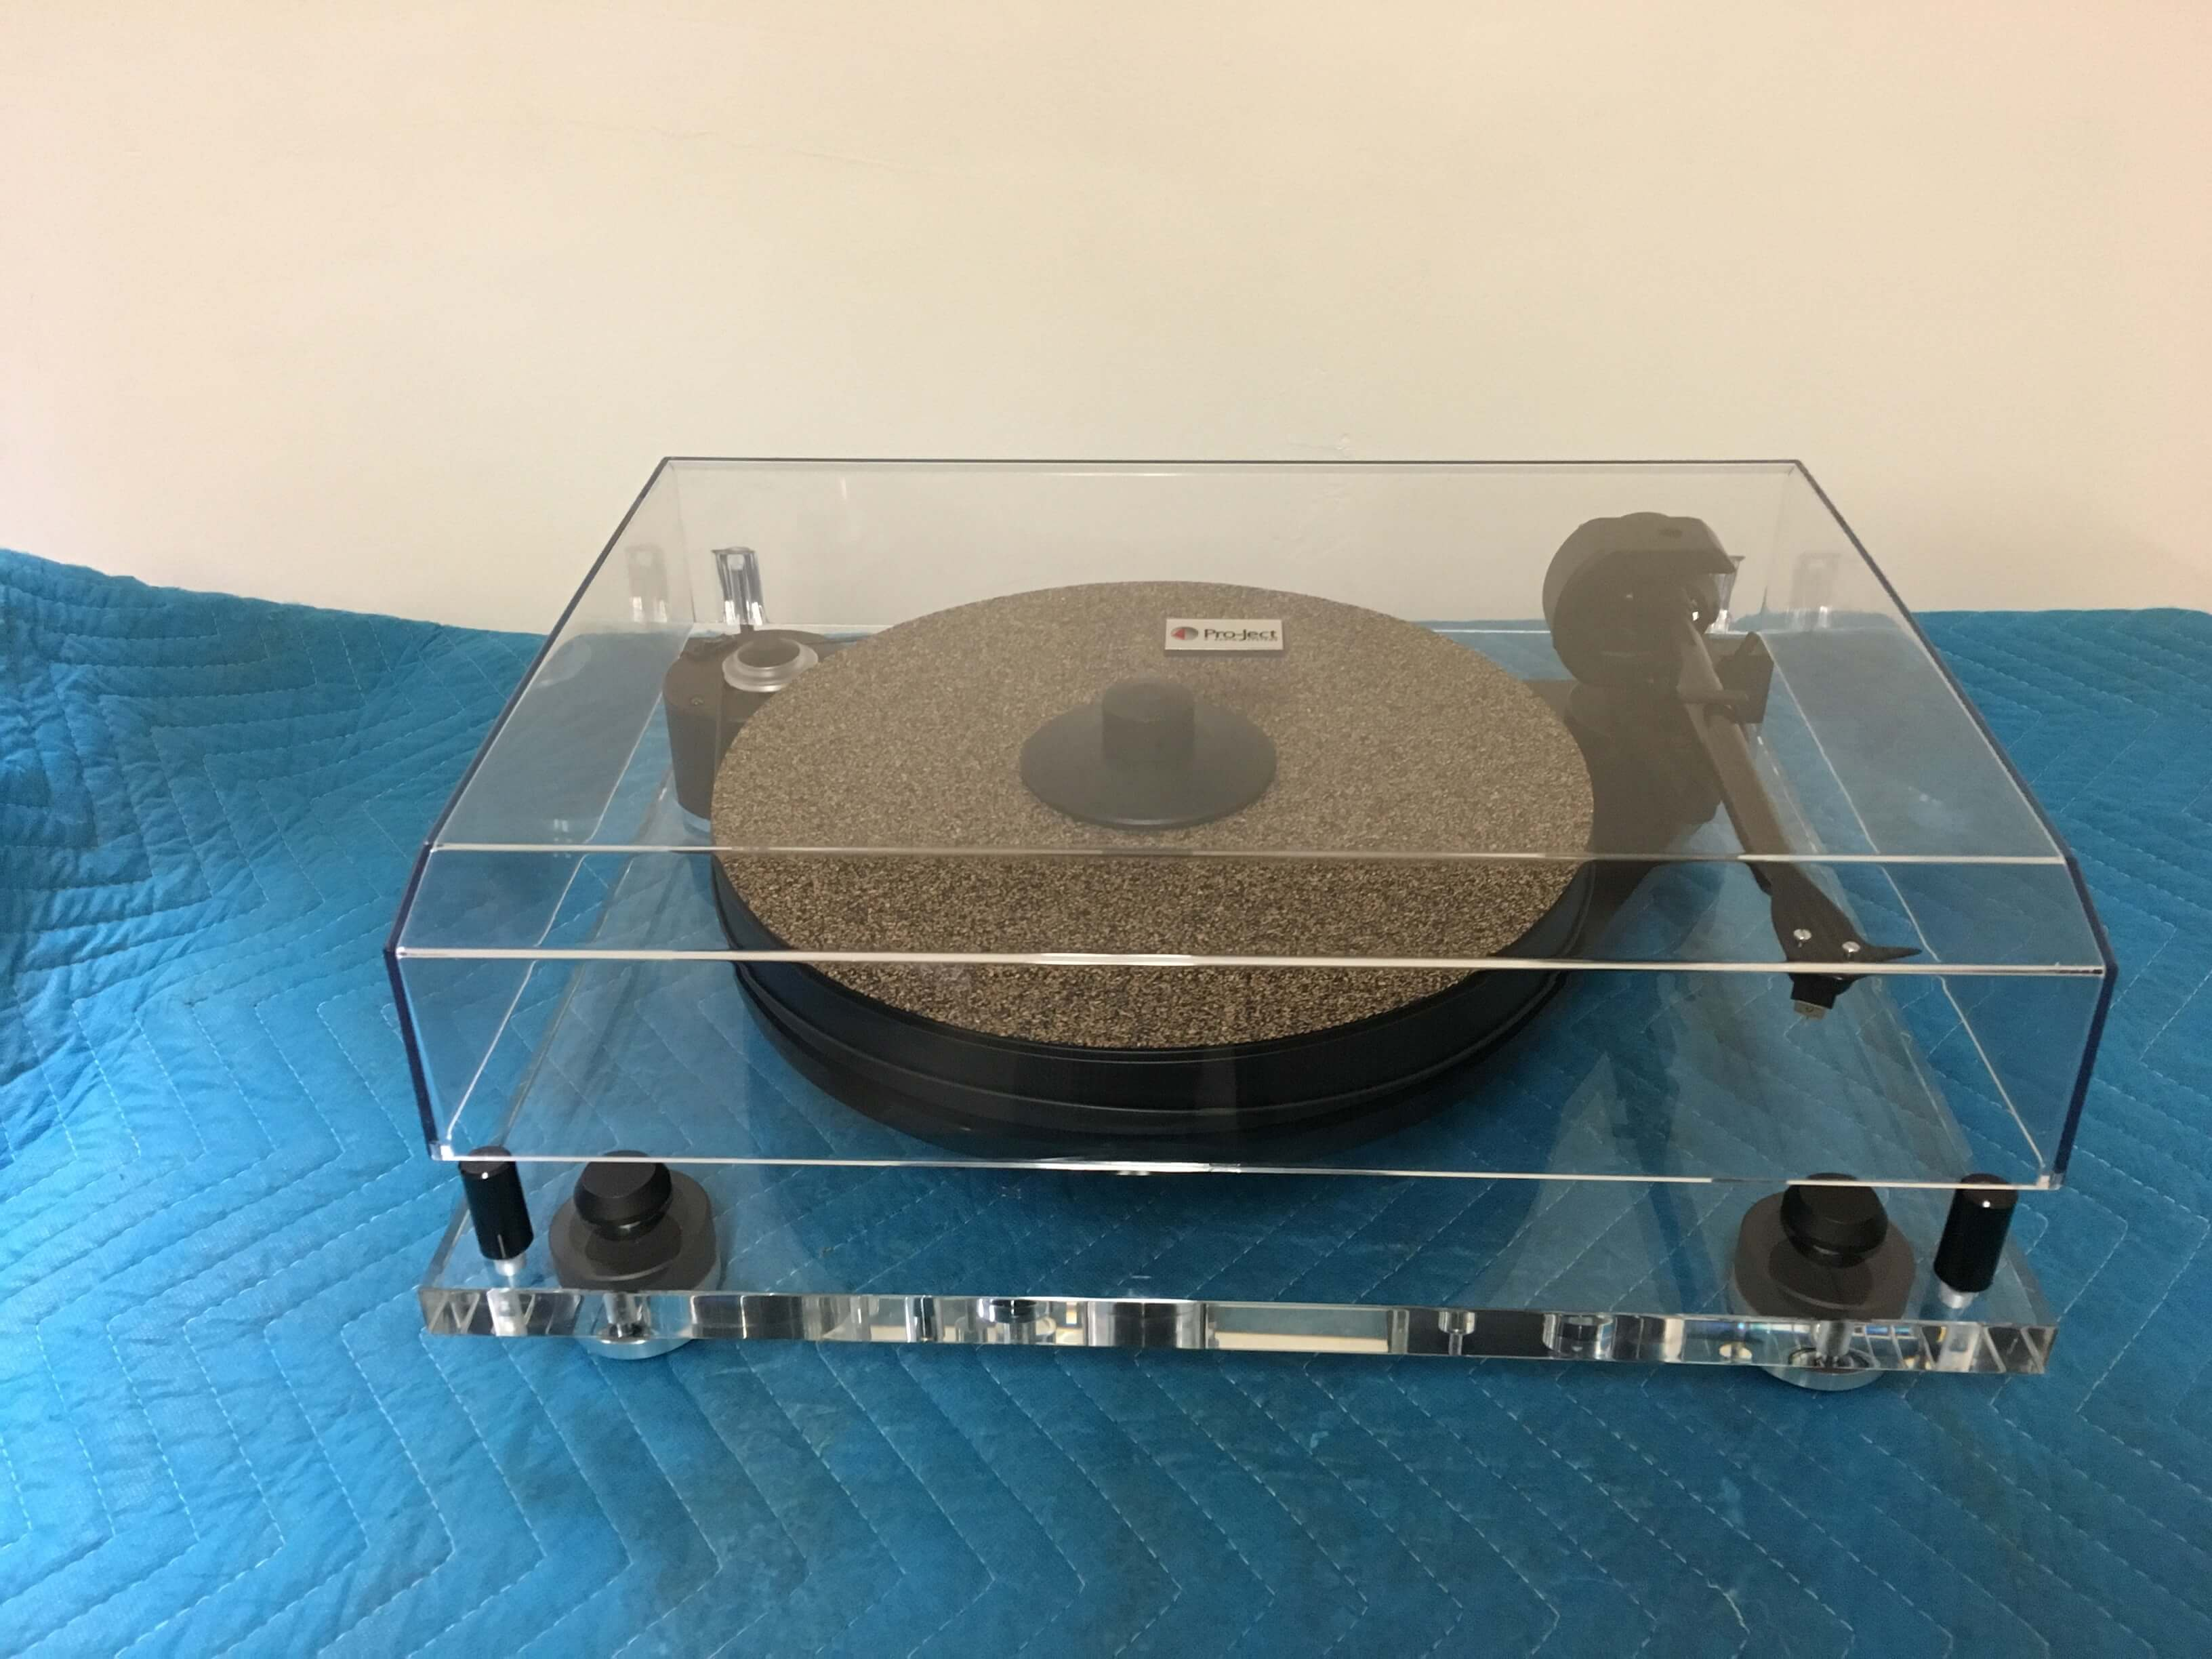 Pro-Ject Xtension 9 Evolution Superpack acrylic turntable